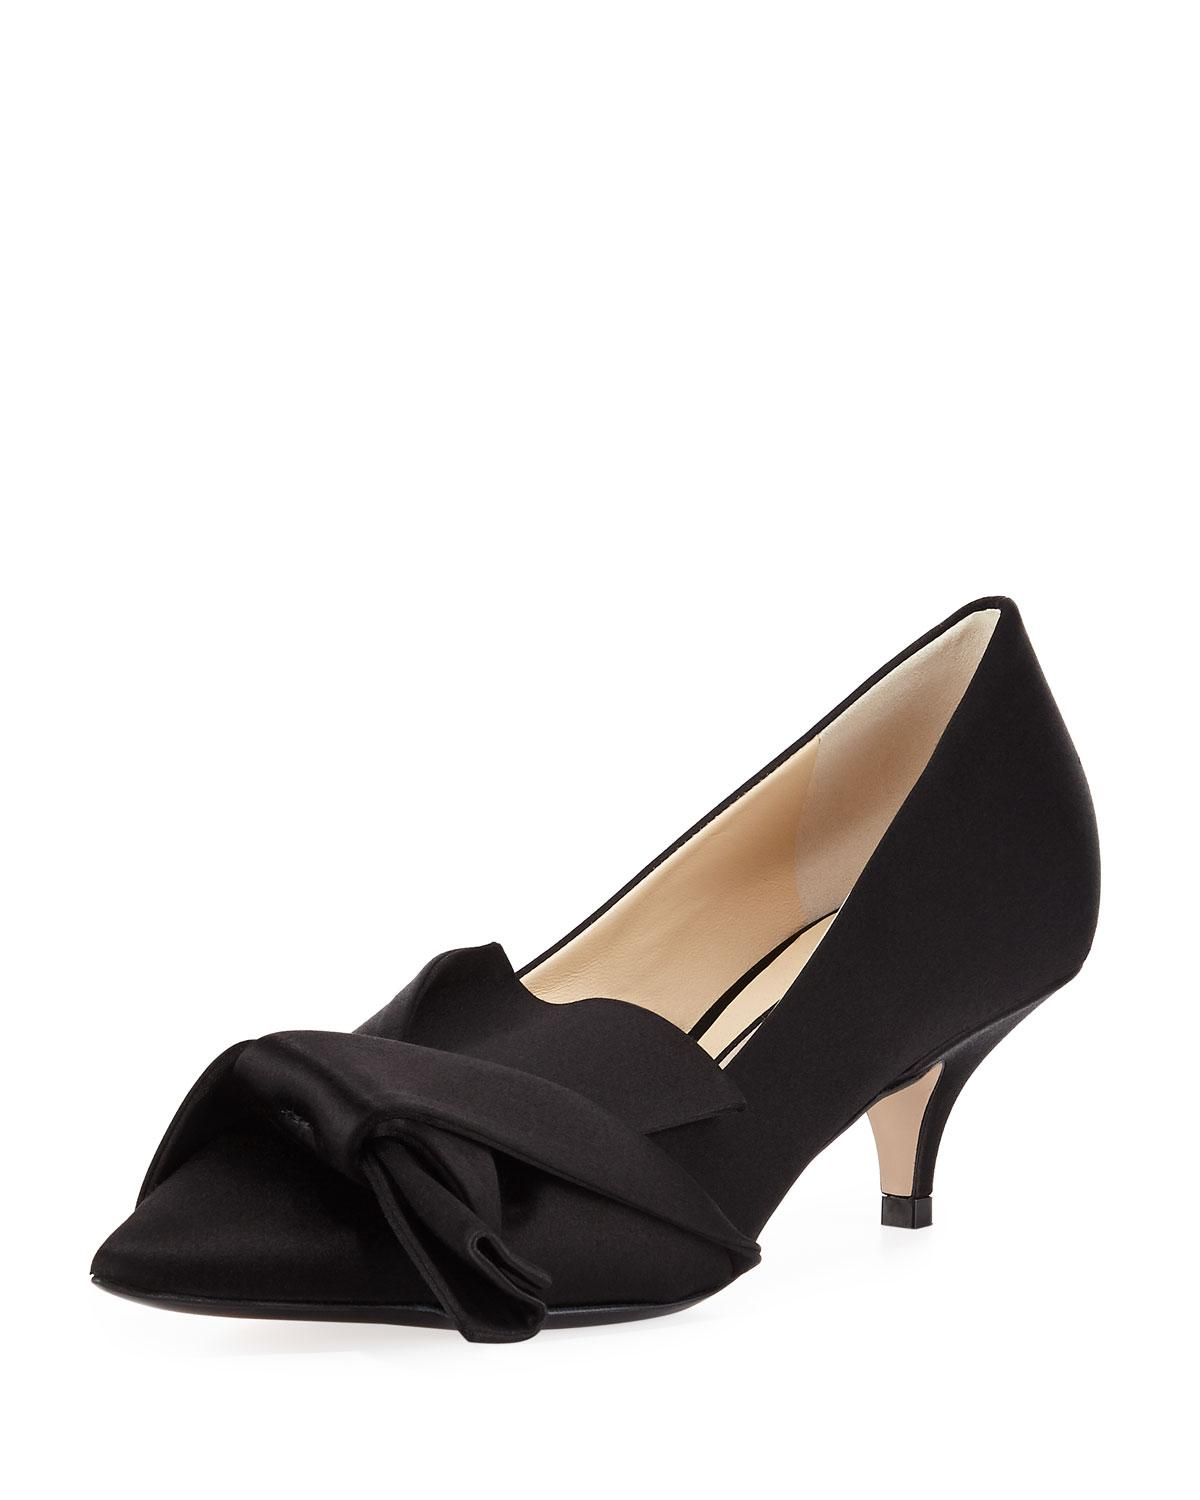 b75356b4aa Lyst - N°21 Satin Pumps With Knotted Bow in Black